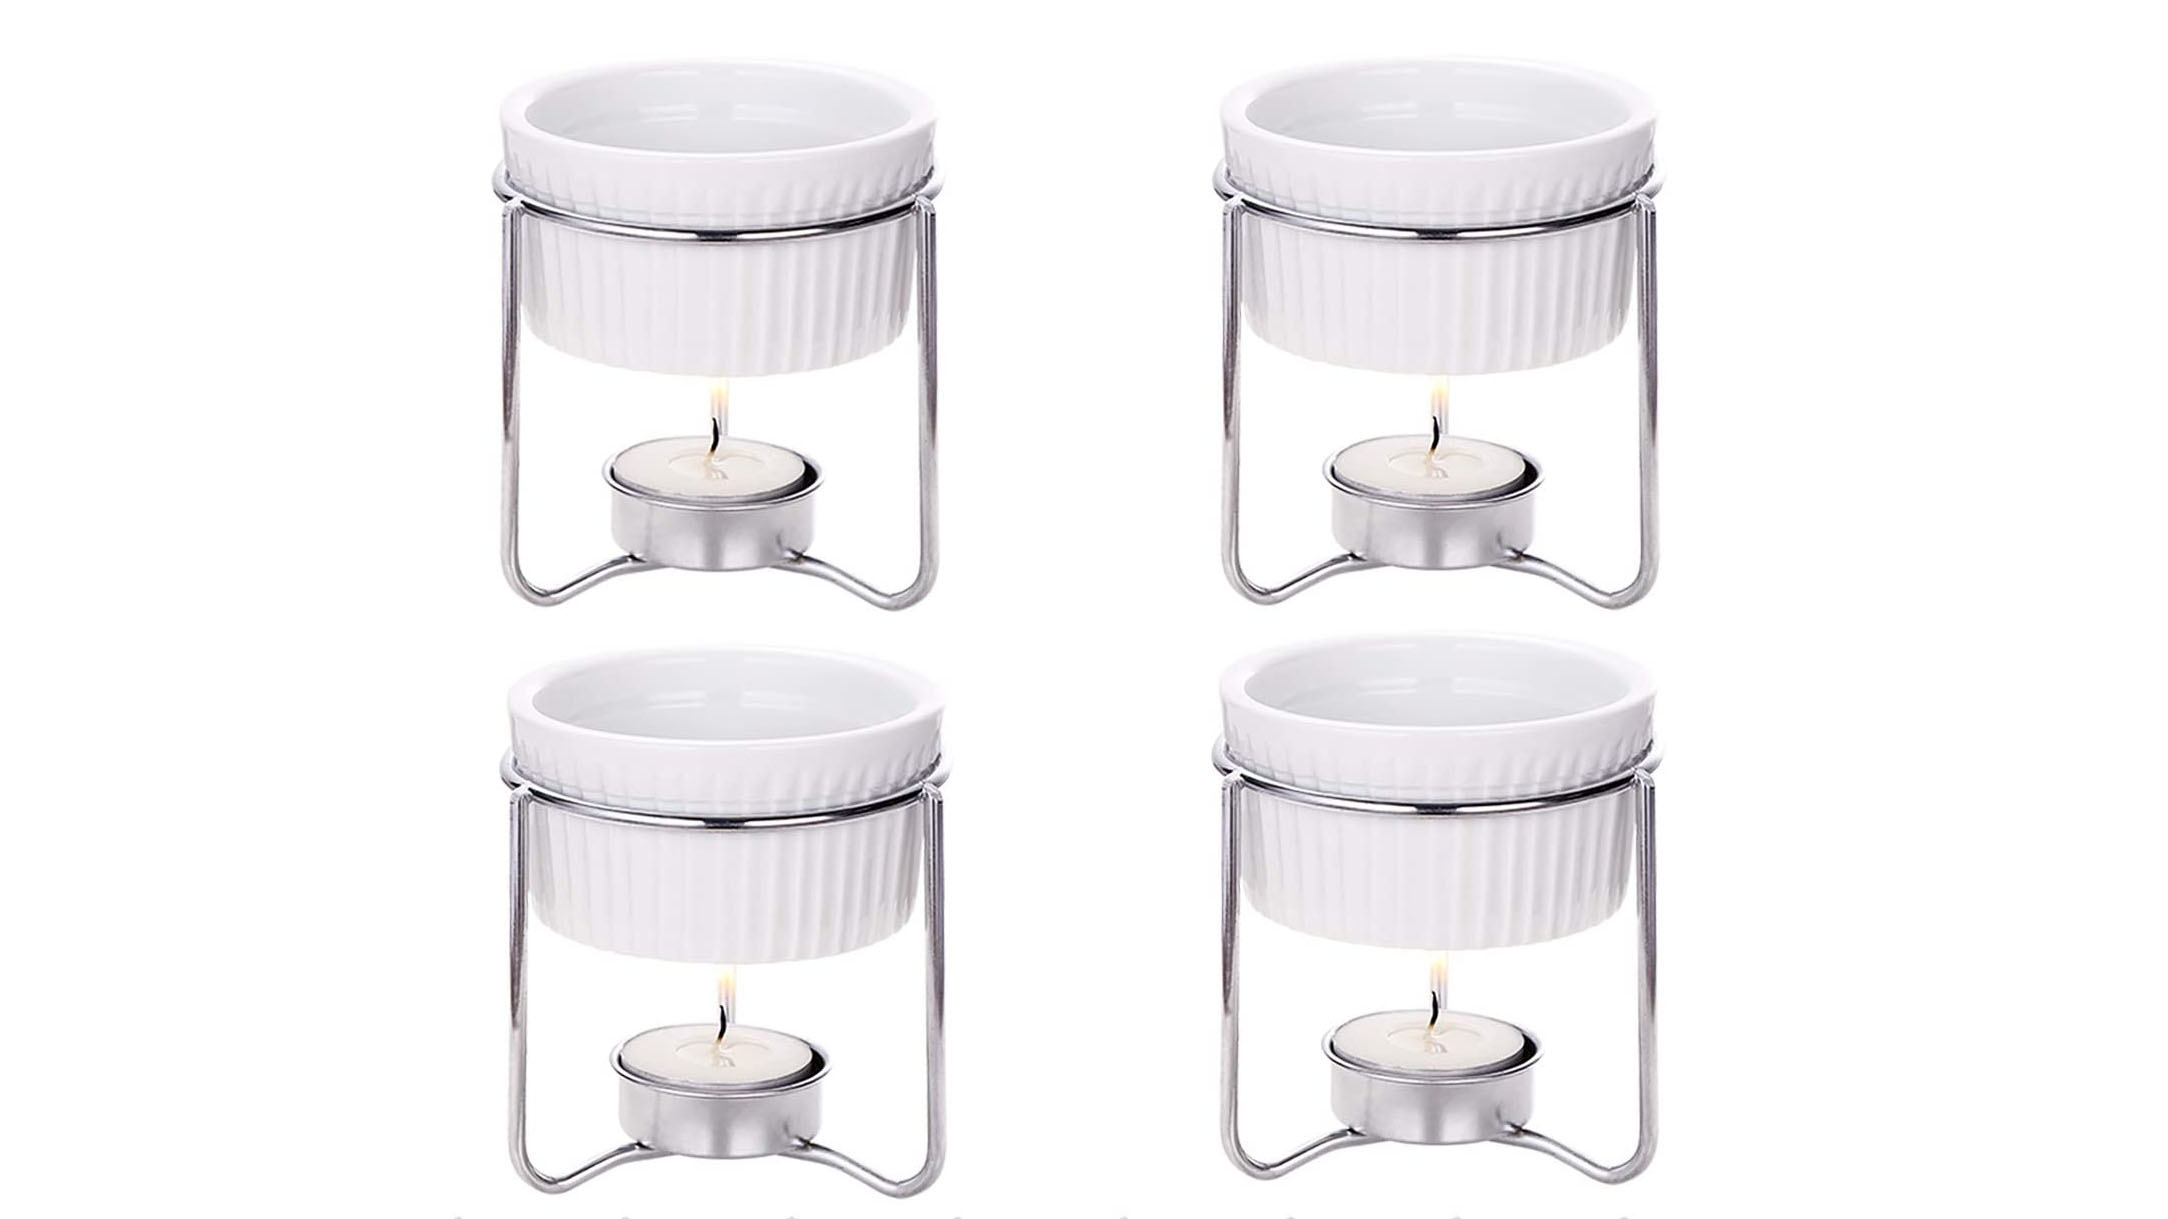 Hiware ceramic butter warmers